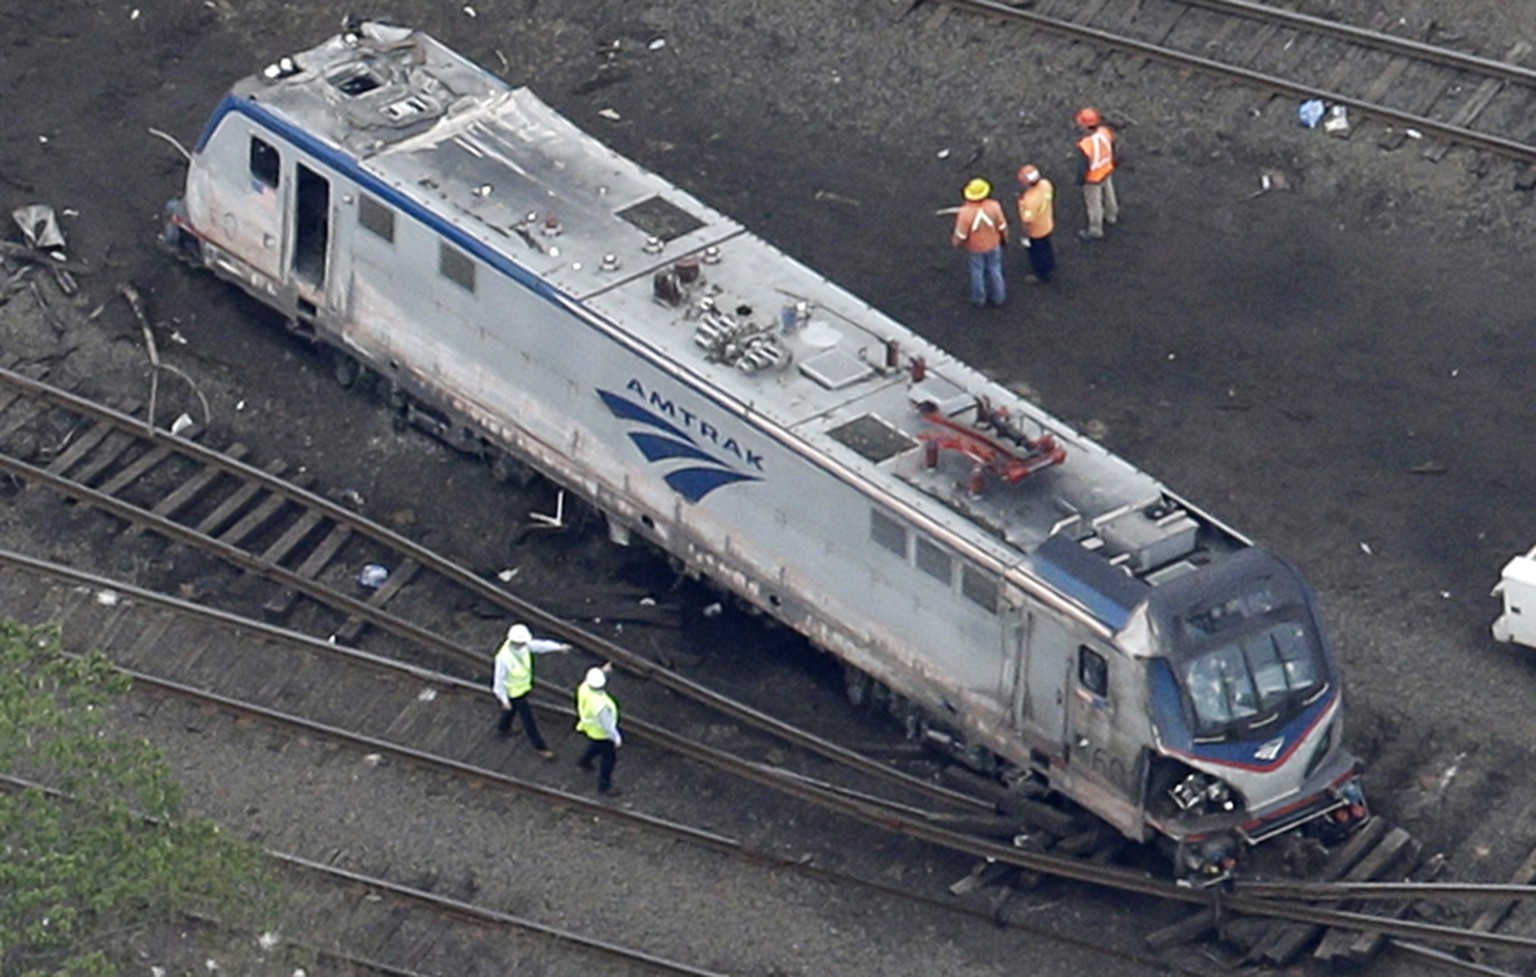 In this May 13, 2015 photo, emergency personnel work at the scene of a deadly train wreck in Philadelphia. (AP Photo/Patrick Semansky)